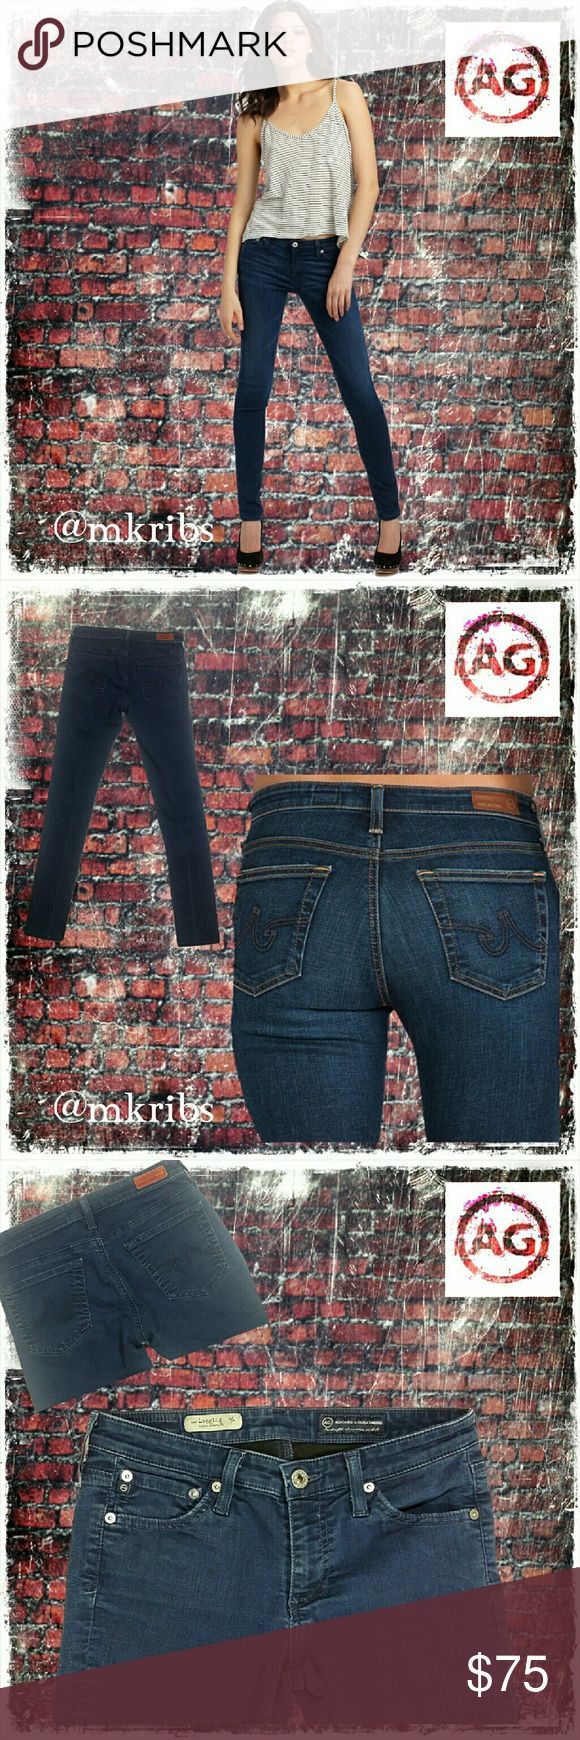 AG The Legging skinny stretch jean Adriano Goldschmied 'The Legging Super Skinny Jean' with stretch size 26 regular. See photos above. NO TRADES PLEASE! OFFERS WELCOME THROUGH OFFER FEATURE ONLY PLEASE! AG Adriano Goldschmied Jeans Skinny